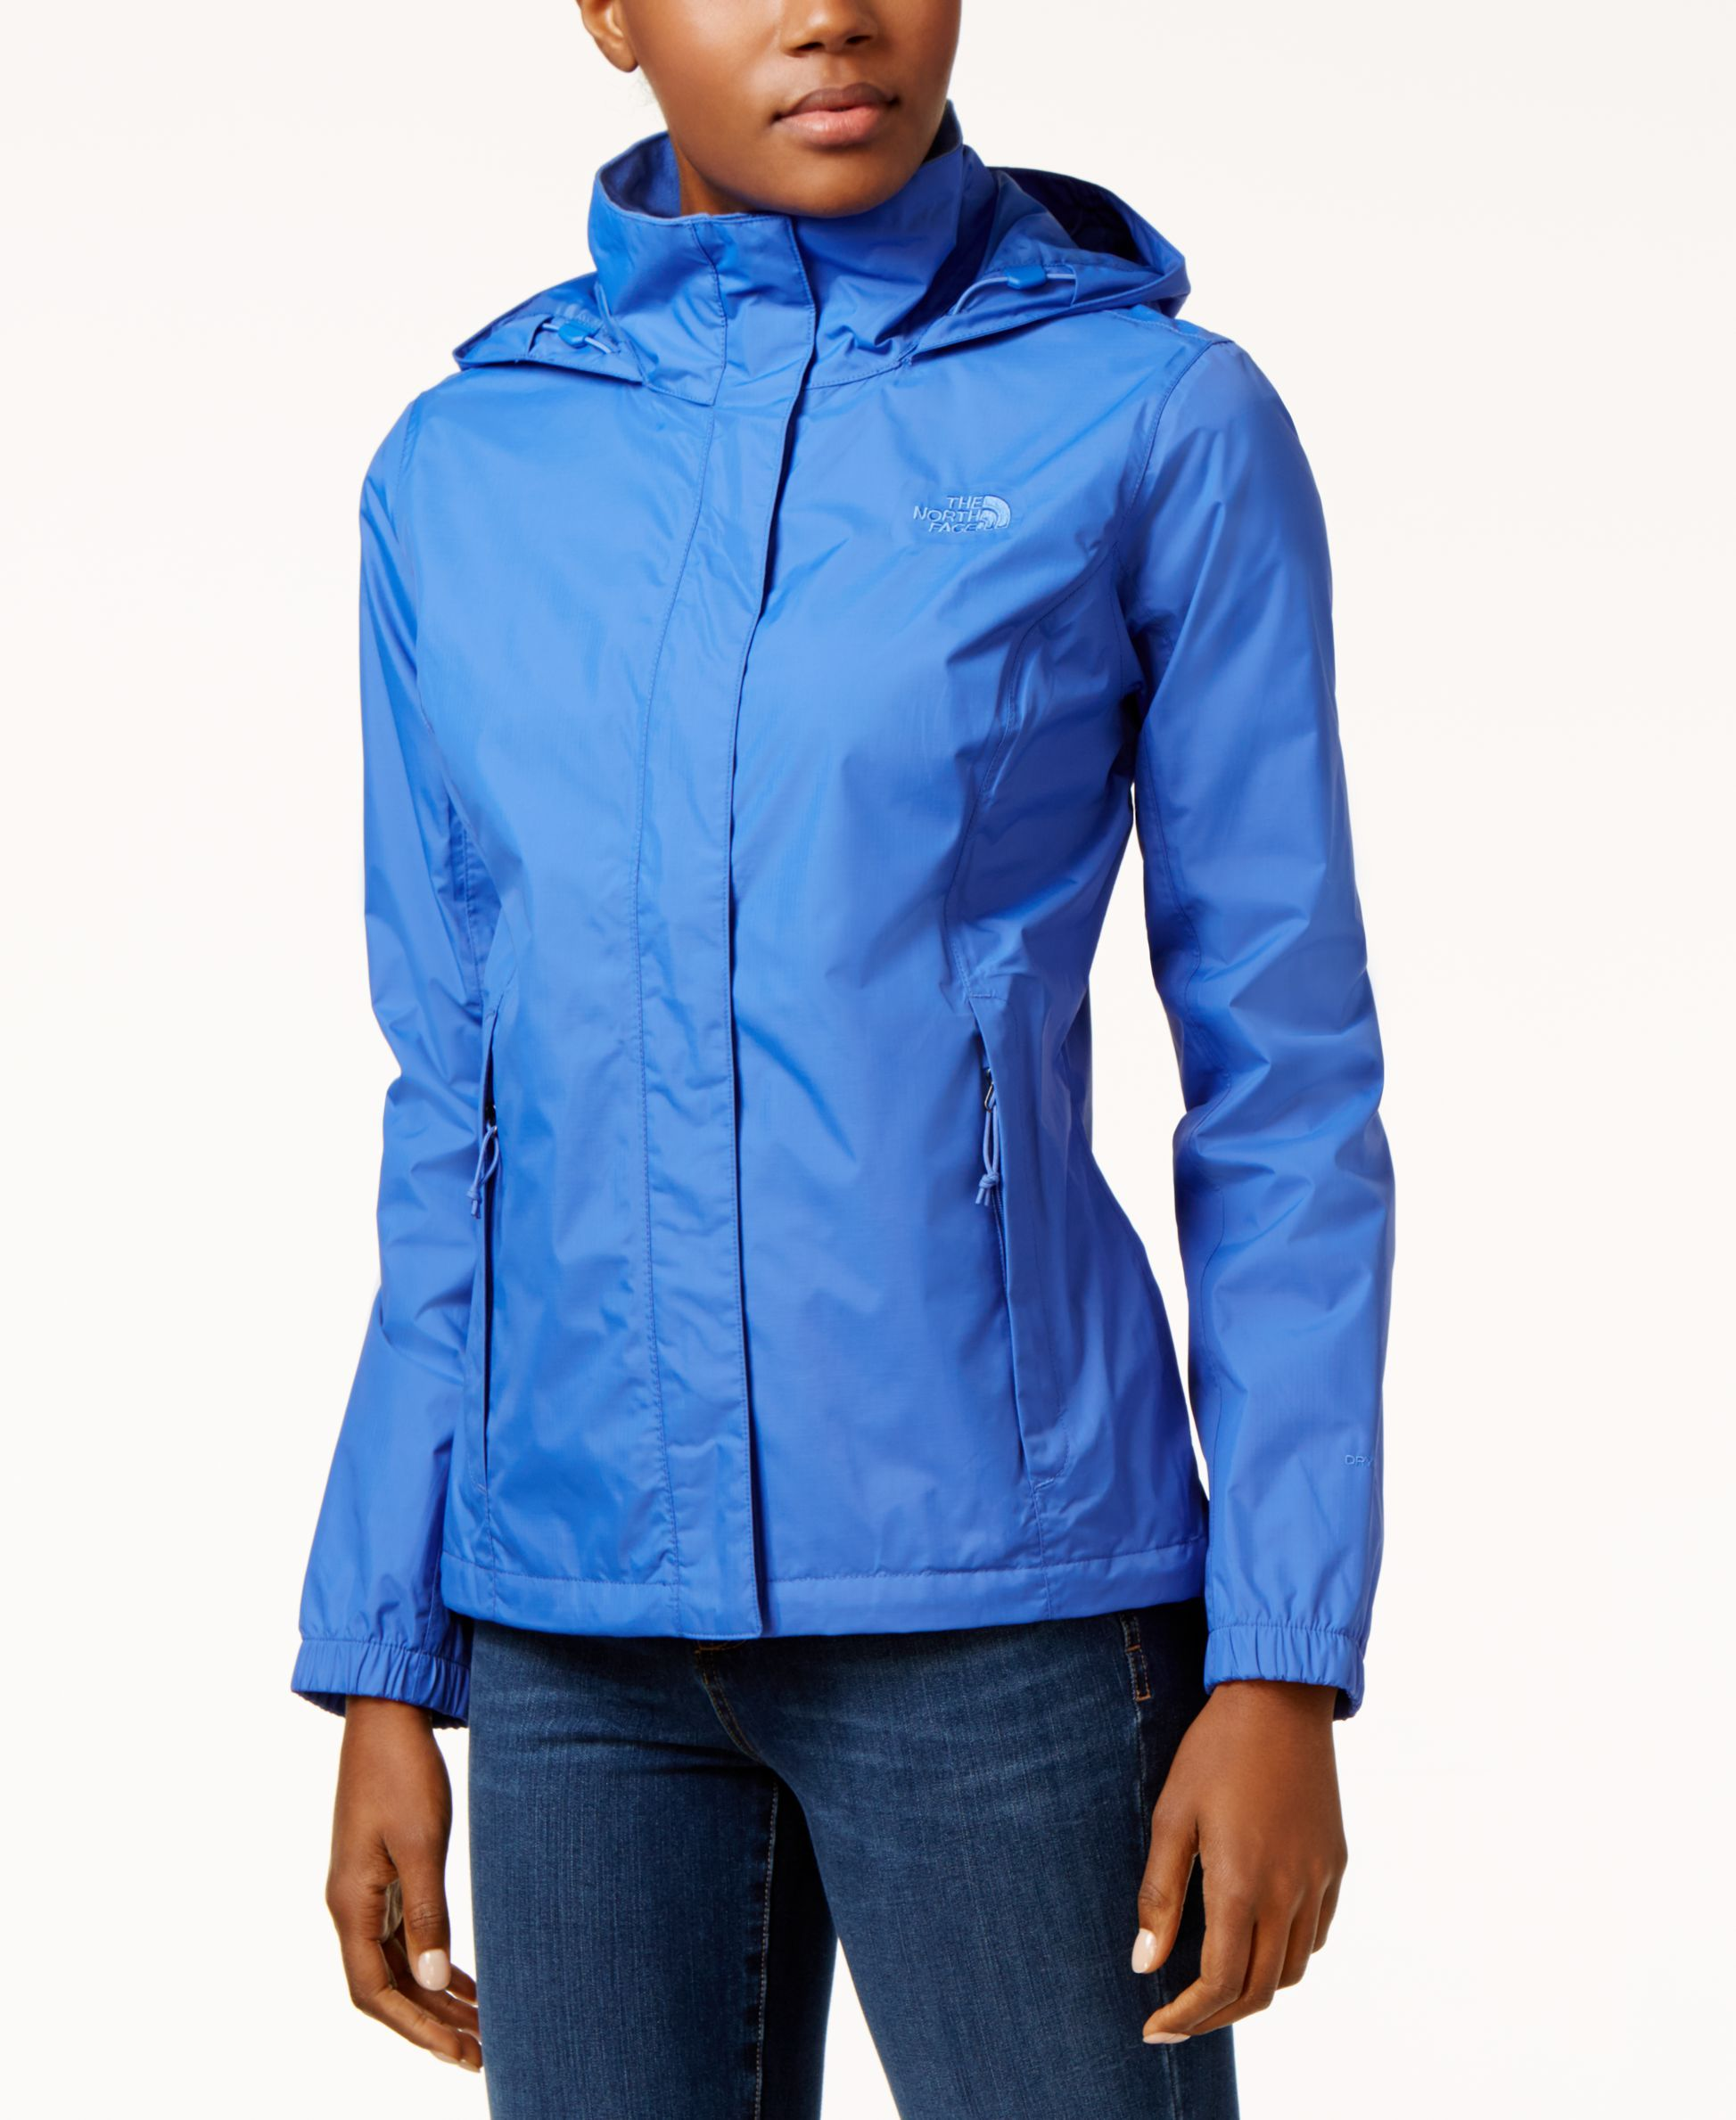 The North Face Resolve 2 Waterproof Packable Rain Jacket  539a0956a6b2